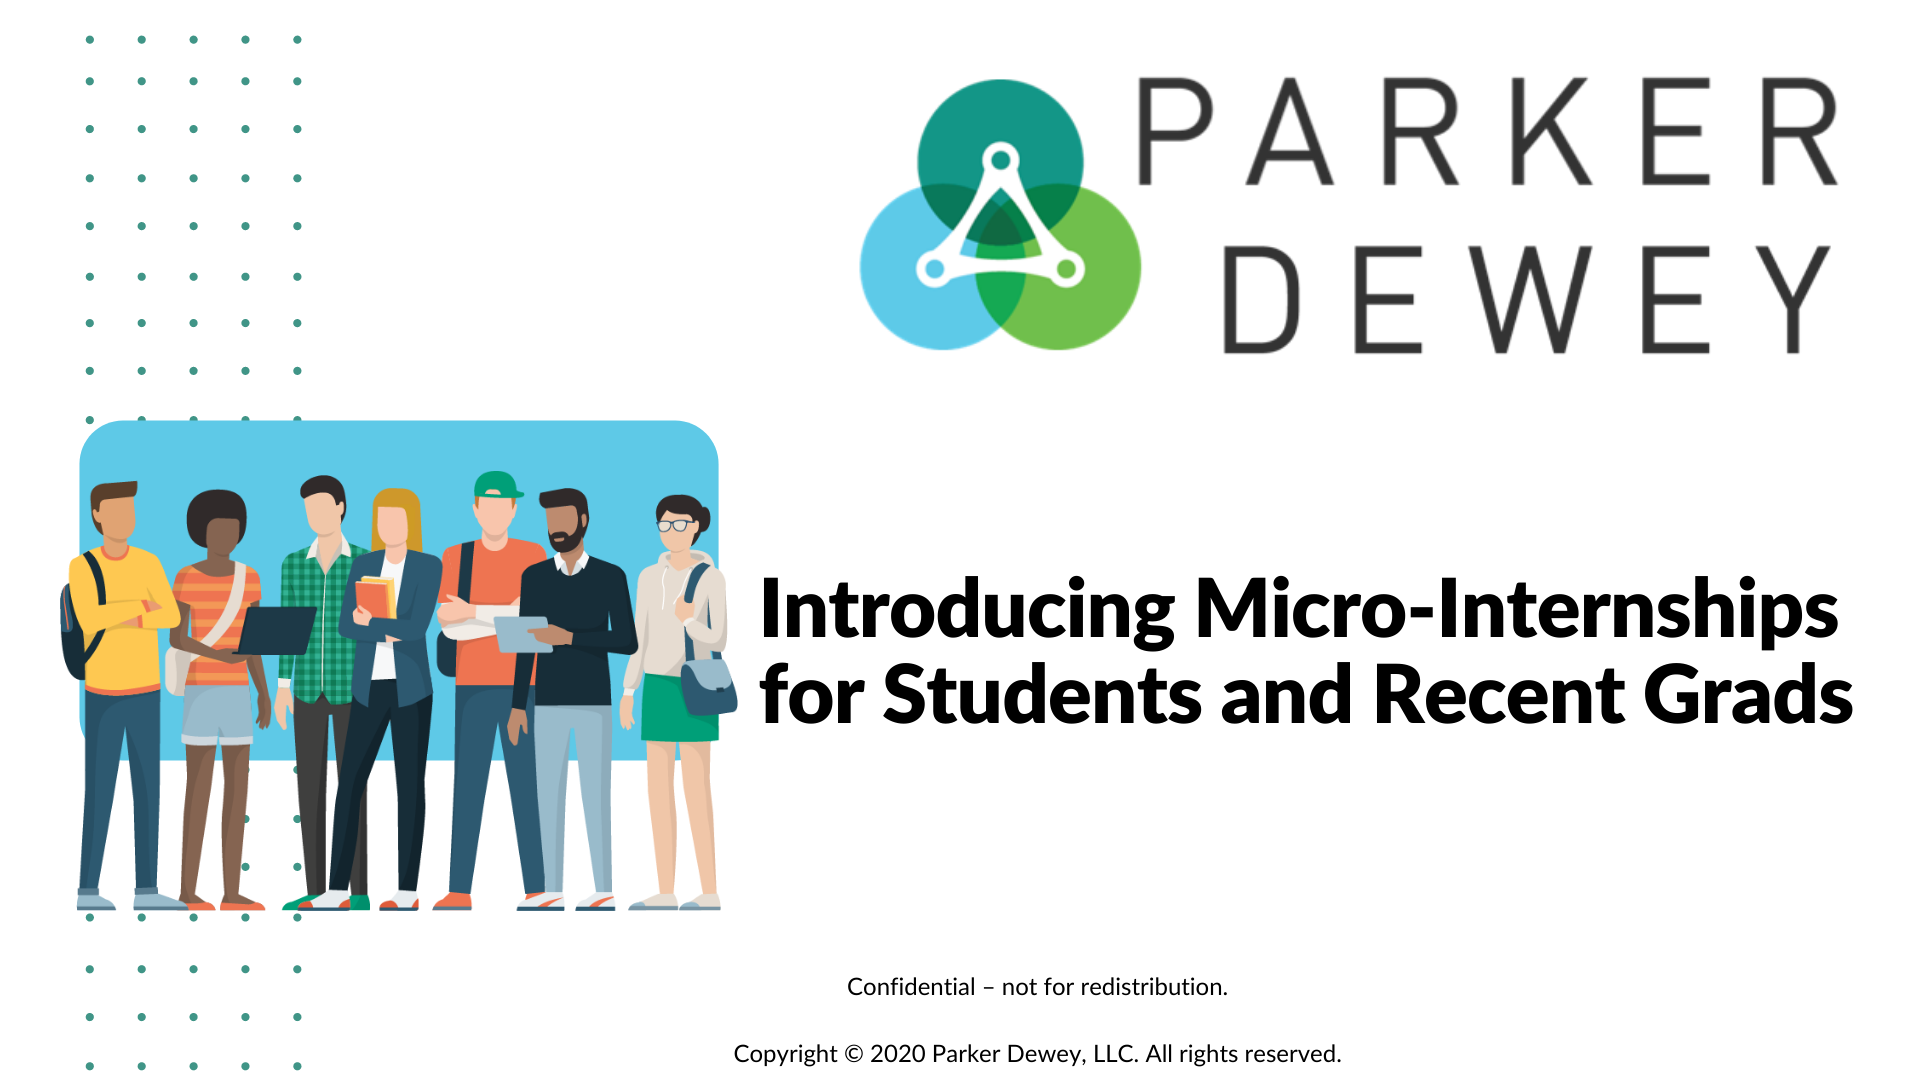 Introducing Micro-Internships for Students and Recent Grads